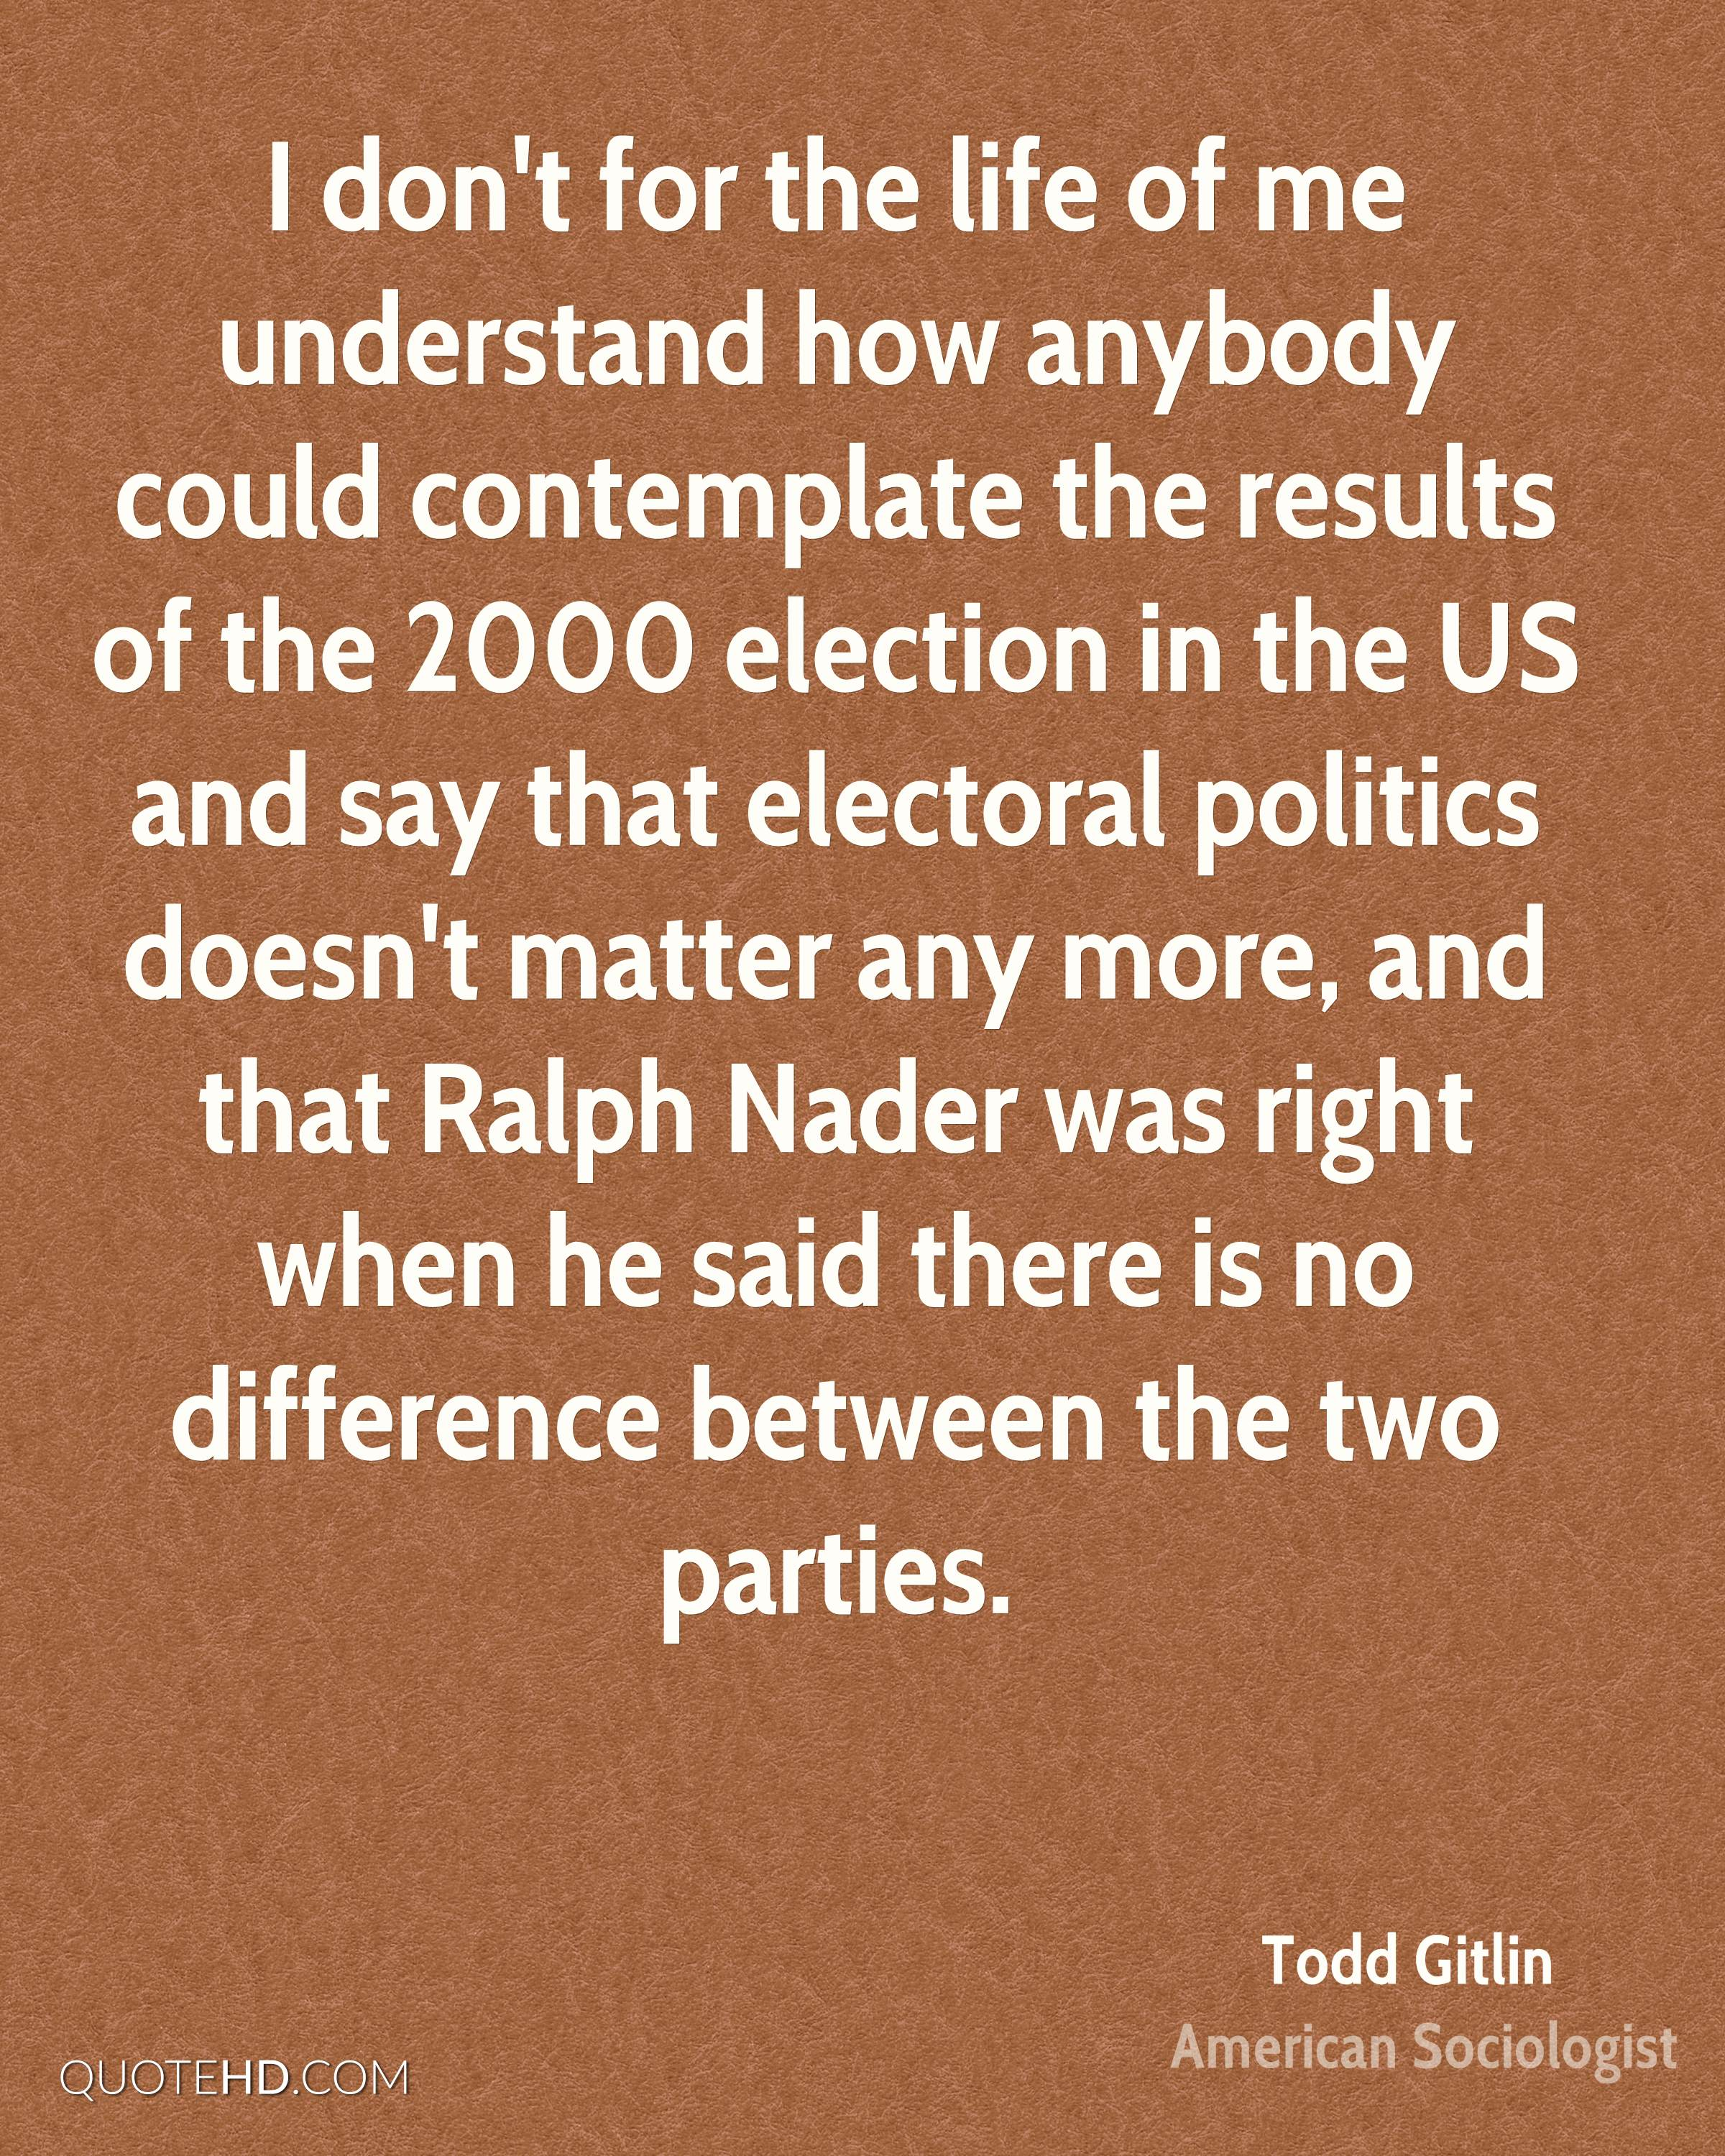 I don't for the life of me understand how anybody could contemplate the results of the 2000 election in the US and say that electoral politics doesn't matter any more, and that Ralph Nader was right when he said there is no difference between the two parties.